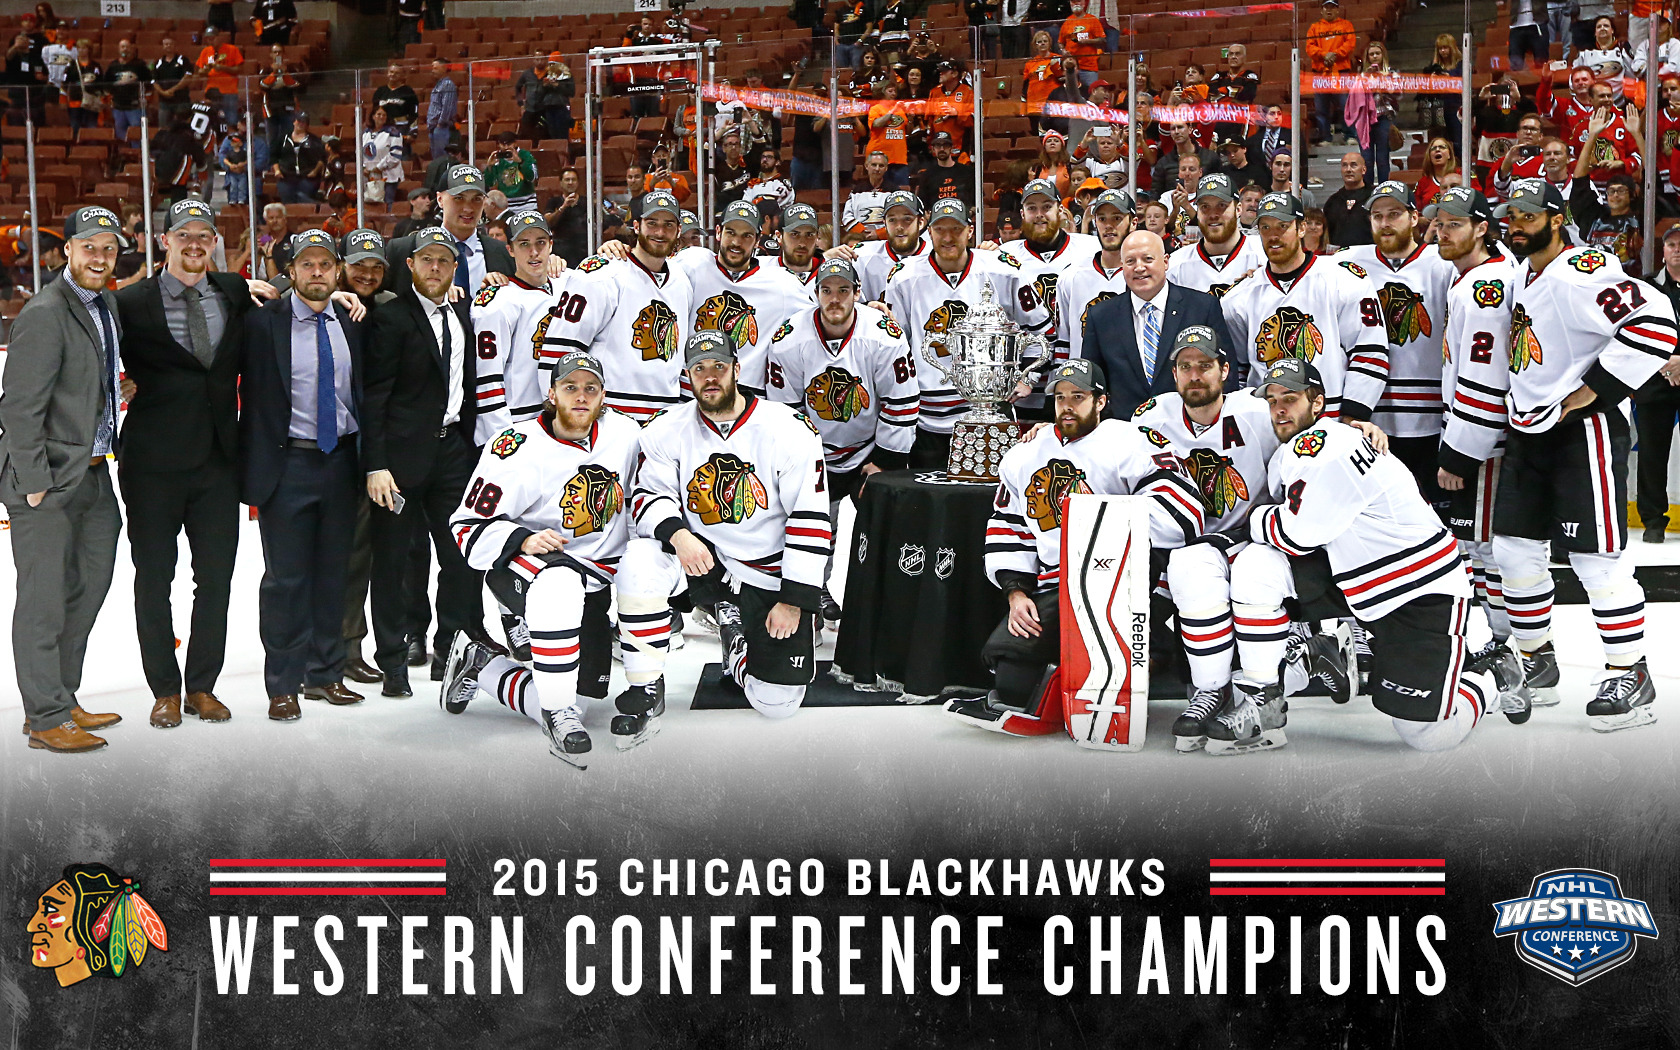 Desktop Wallpaper   Chicago Blackhawks   Fan Zone 1680x1050